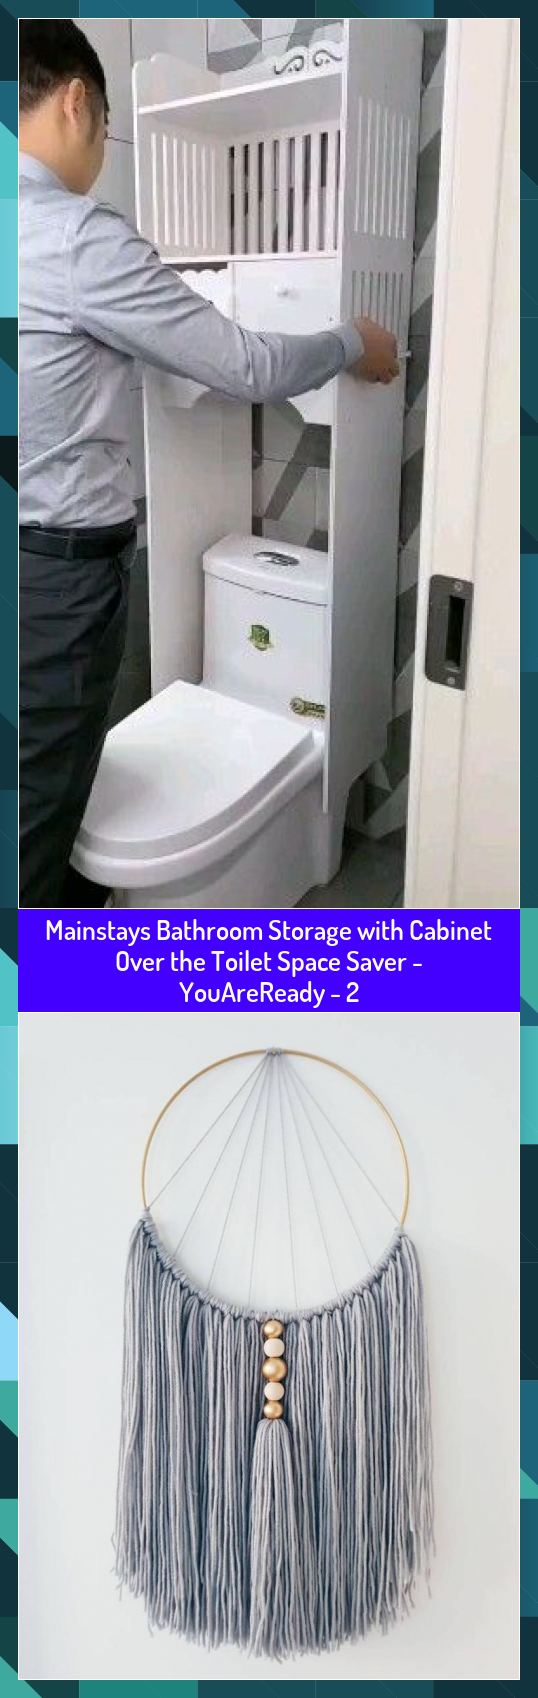 Mainstays Bathroom Storage With Cabinet Over The Toilet Space Saver Youareready 2 Bathroom Cabinet Mainstays Save In 2020 Bathroom Storage Space Savers Storage